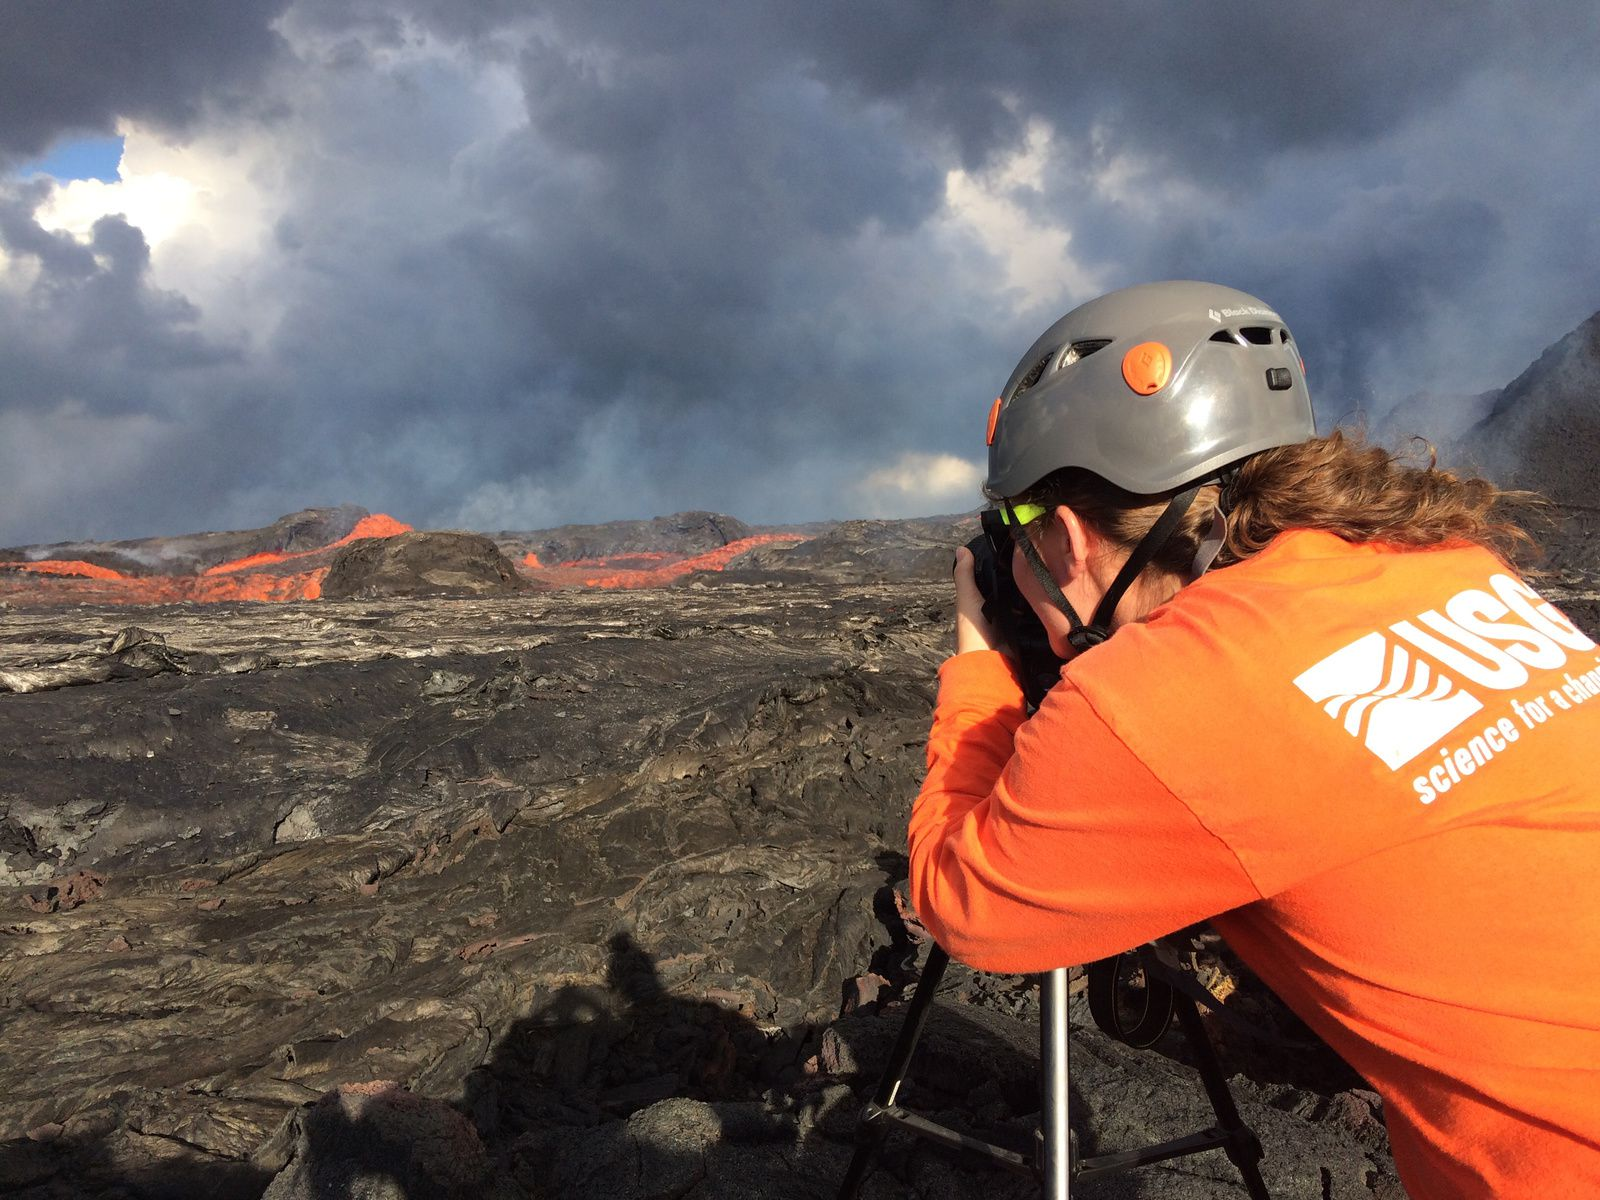 Kilauea East Rift Zone - Controls at the exit of the cone on fissure8 by an USGS volcanologist - the speed of the flow is measured at 30 km / h.